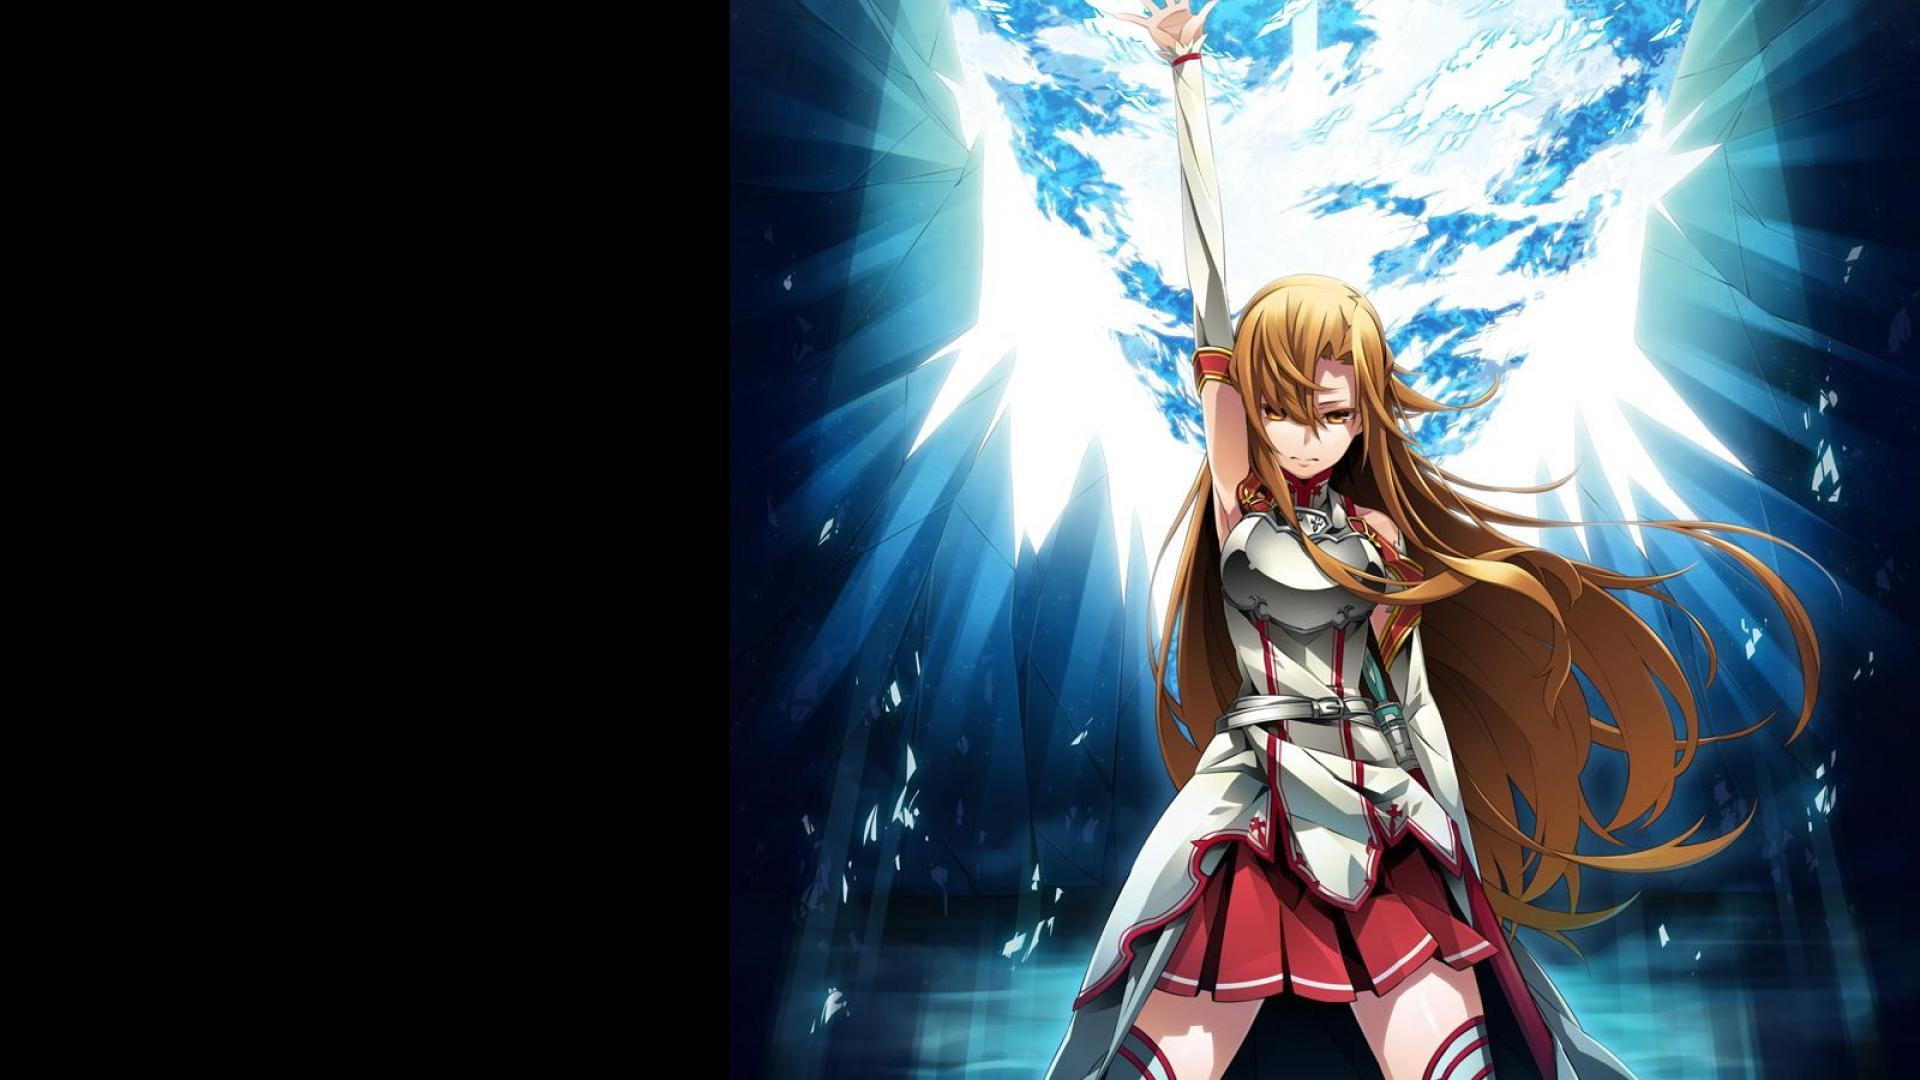 25 Asuna Wallpapers Pictures